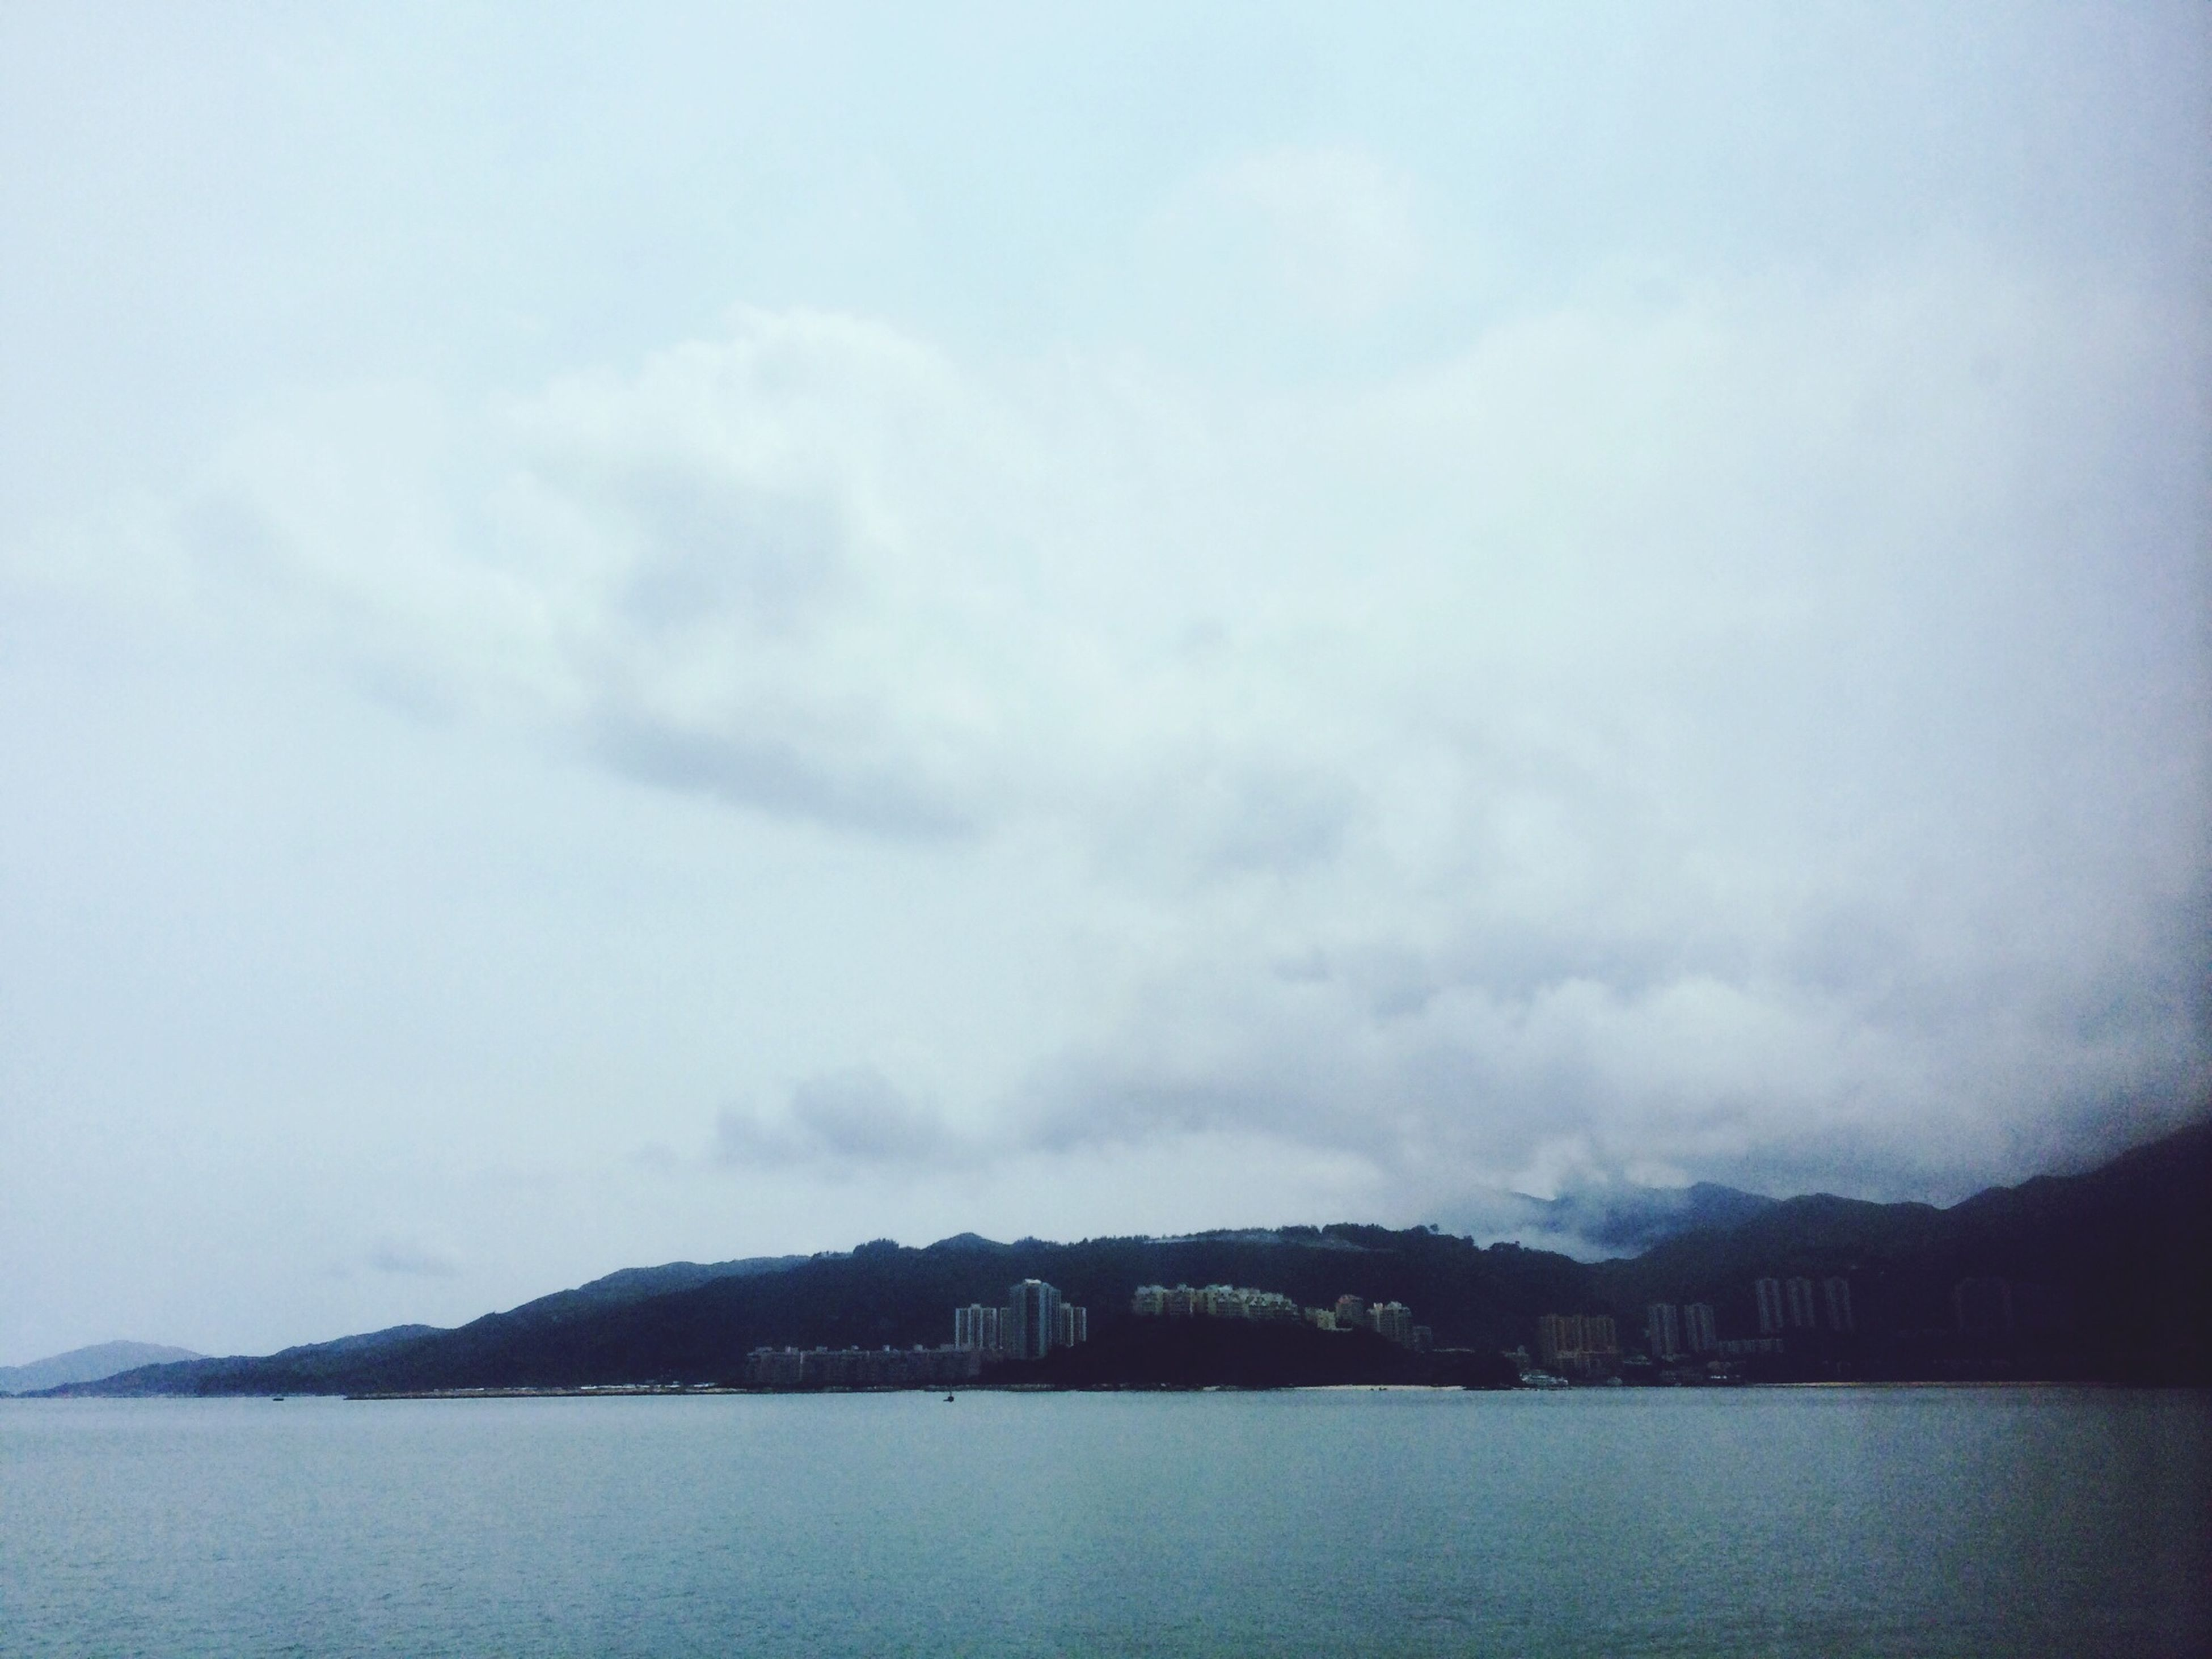 water, sky, waterfront, mountain, scenics, tranquil scene, sea, tranquility, cloud - sky, beauty in nature, nature, built structure, mountain range, architecture, building exterior, river, cloud, cloudy, lake, idyllic